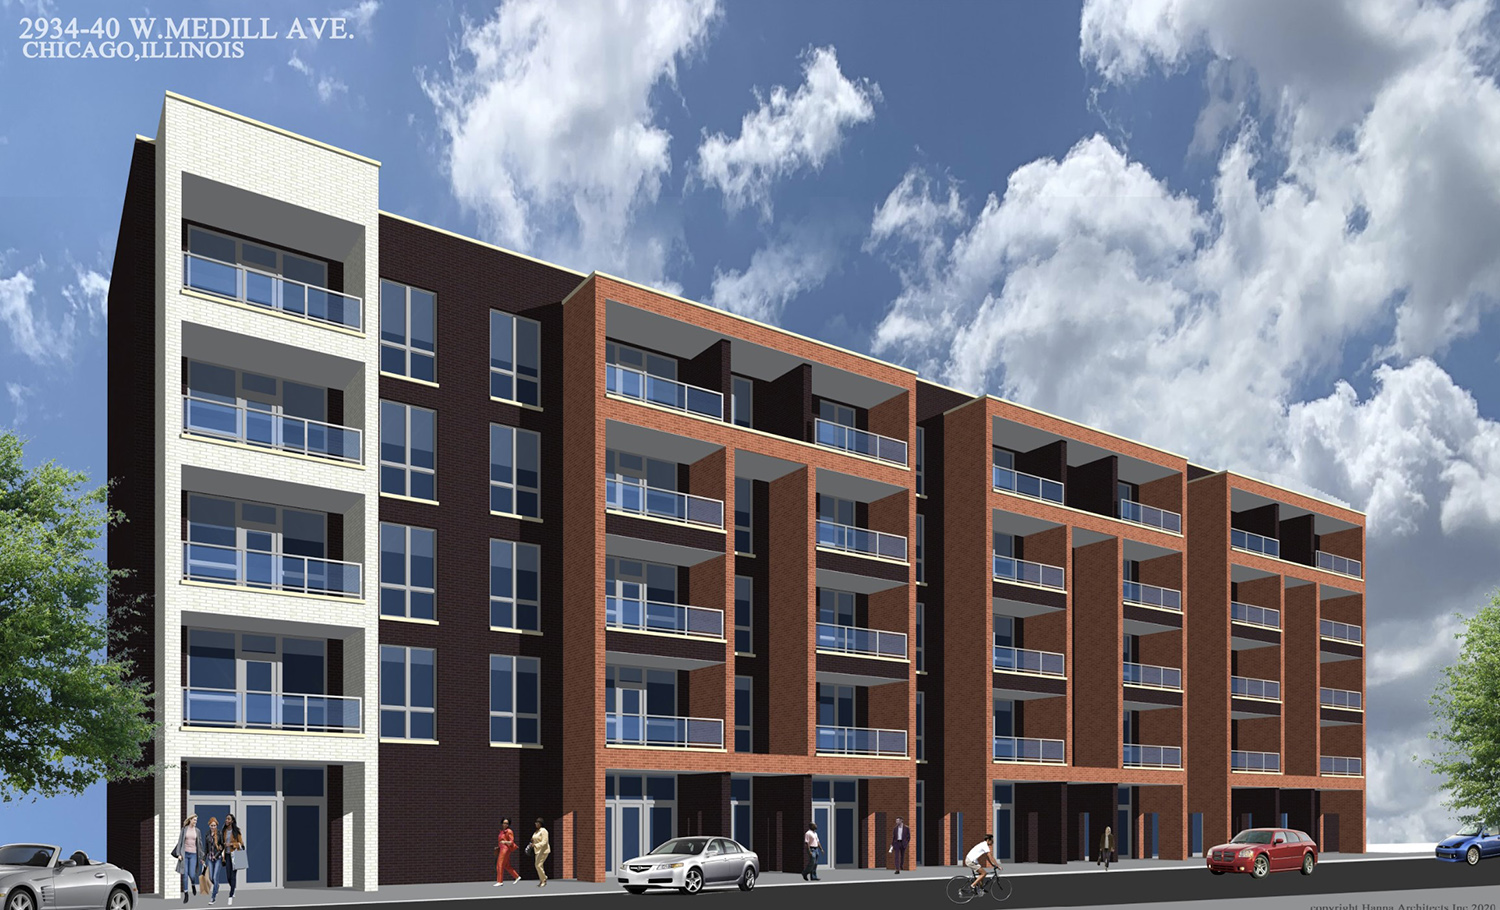 2934 W Medill Avenue. Rendering by Hanna Architects